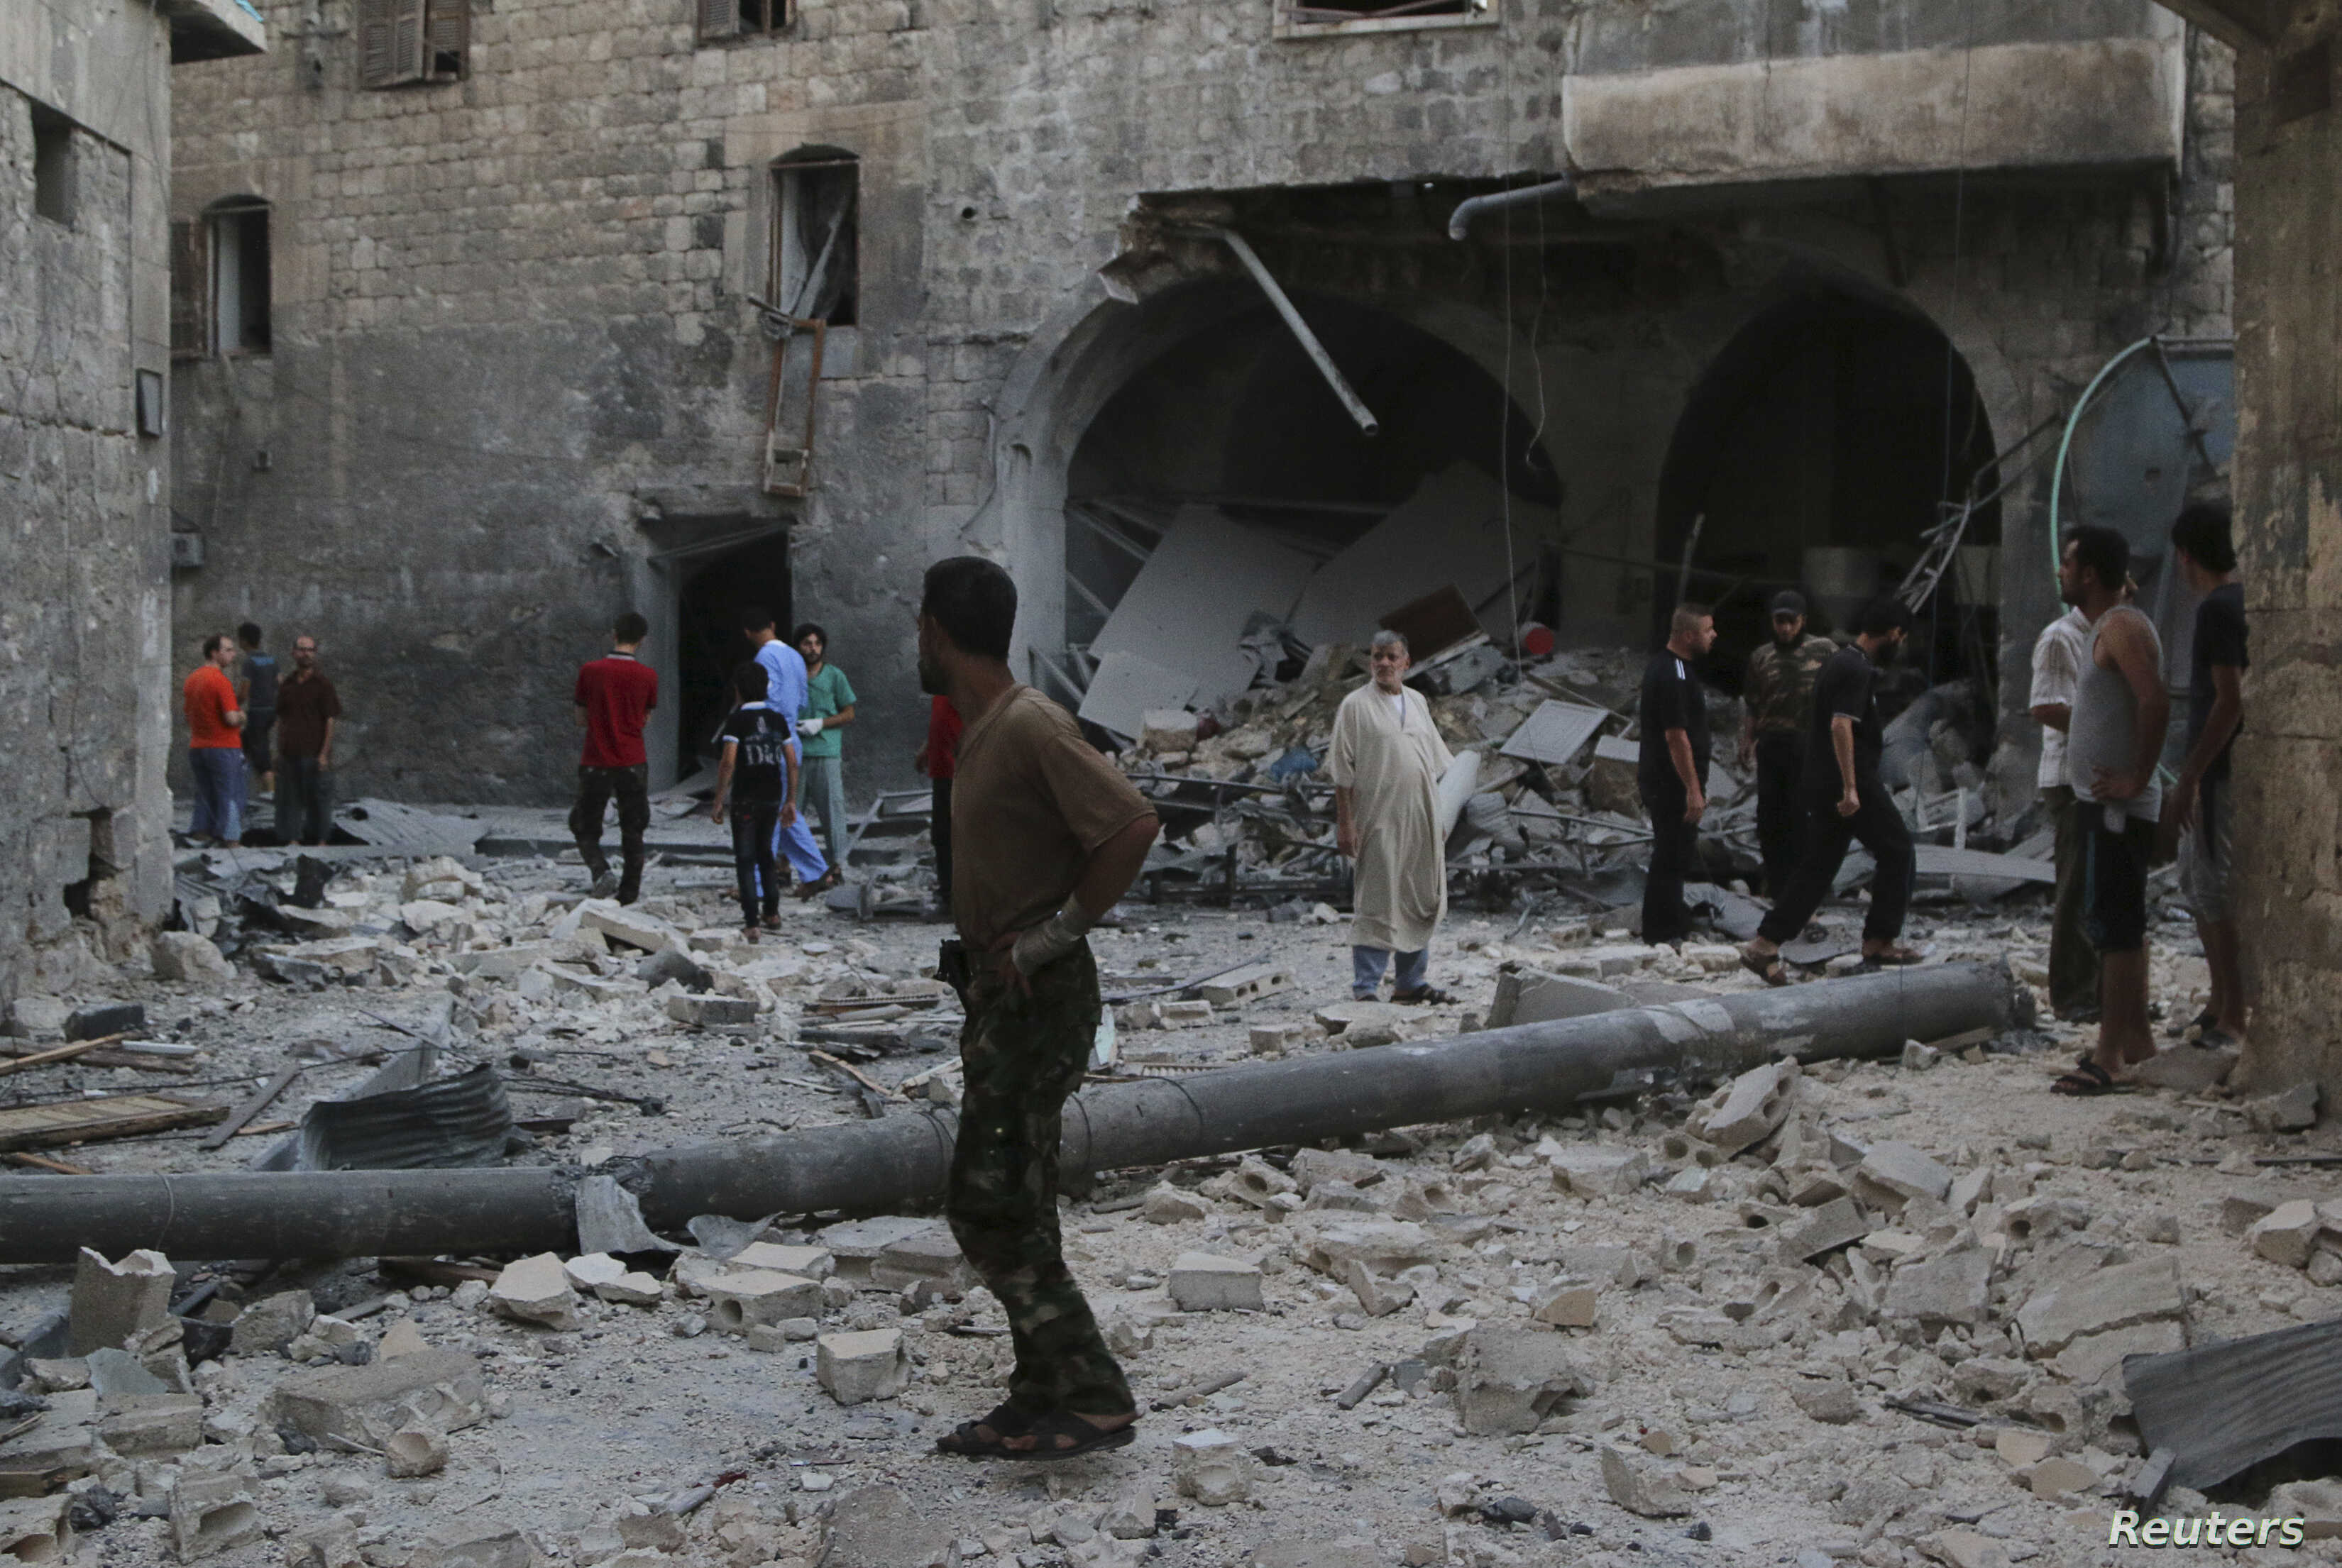 People inspect a site hit by what activists said was an airstrike by forces loyal to Syria's President Bashar al-Assad, in Qadi Askar district in Aleppo, Syria, July 21, 2014.